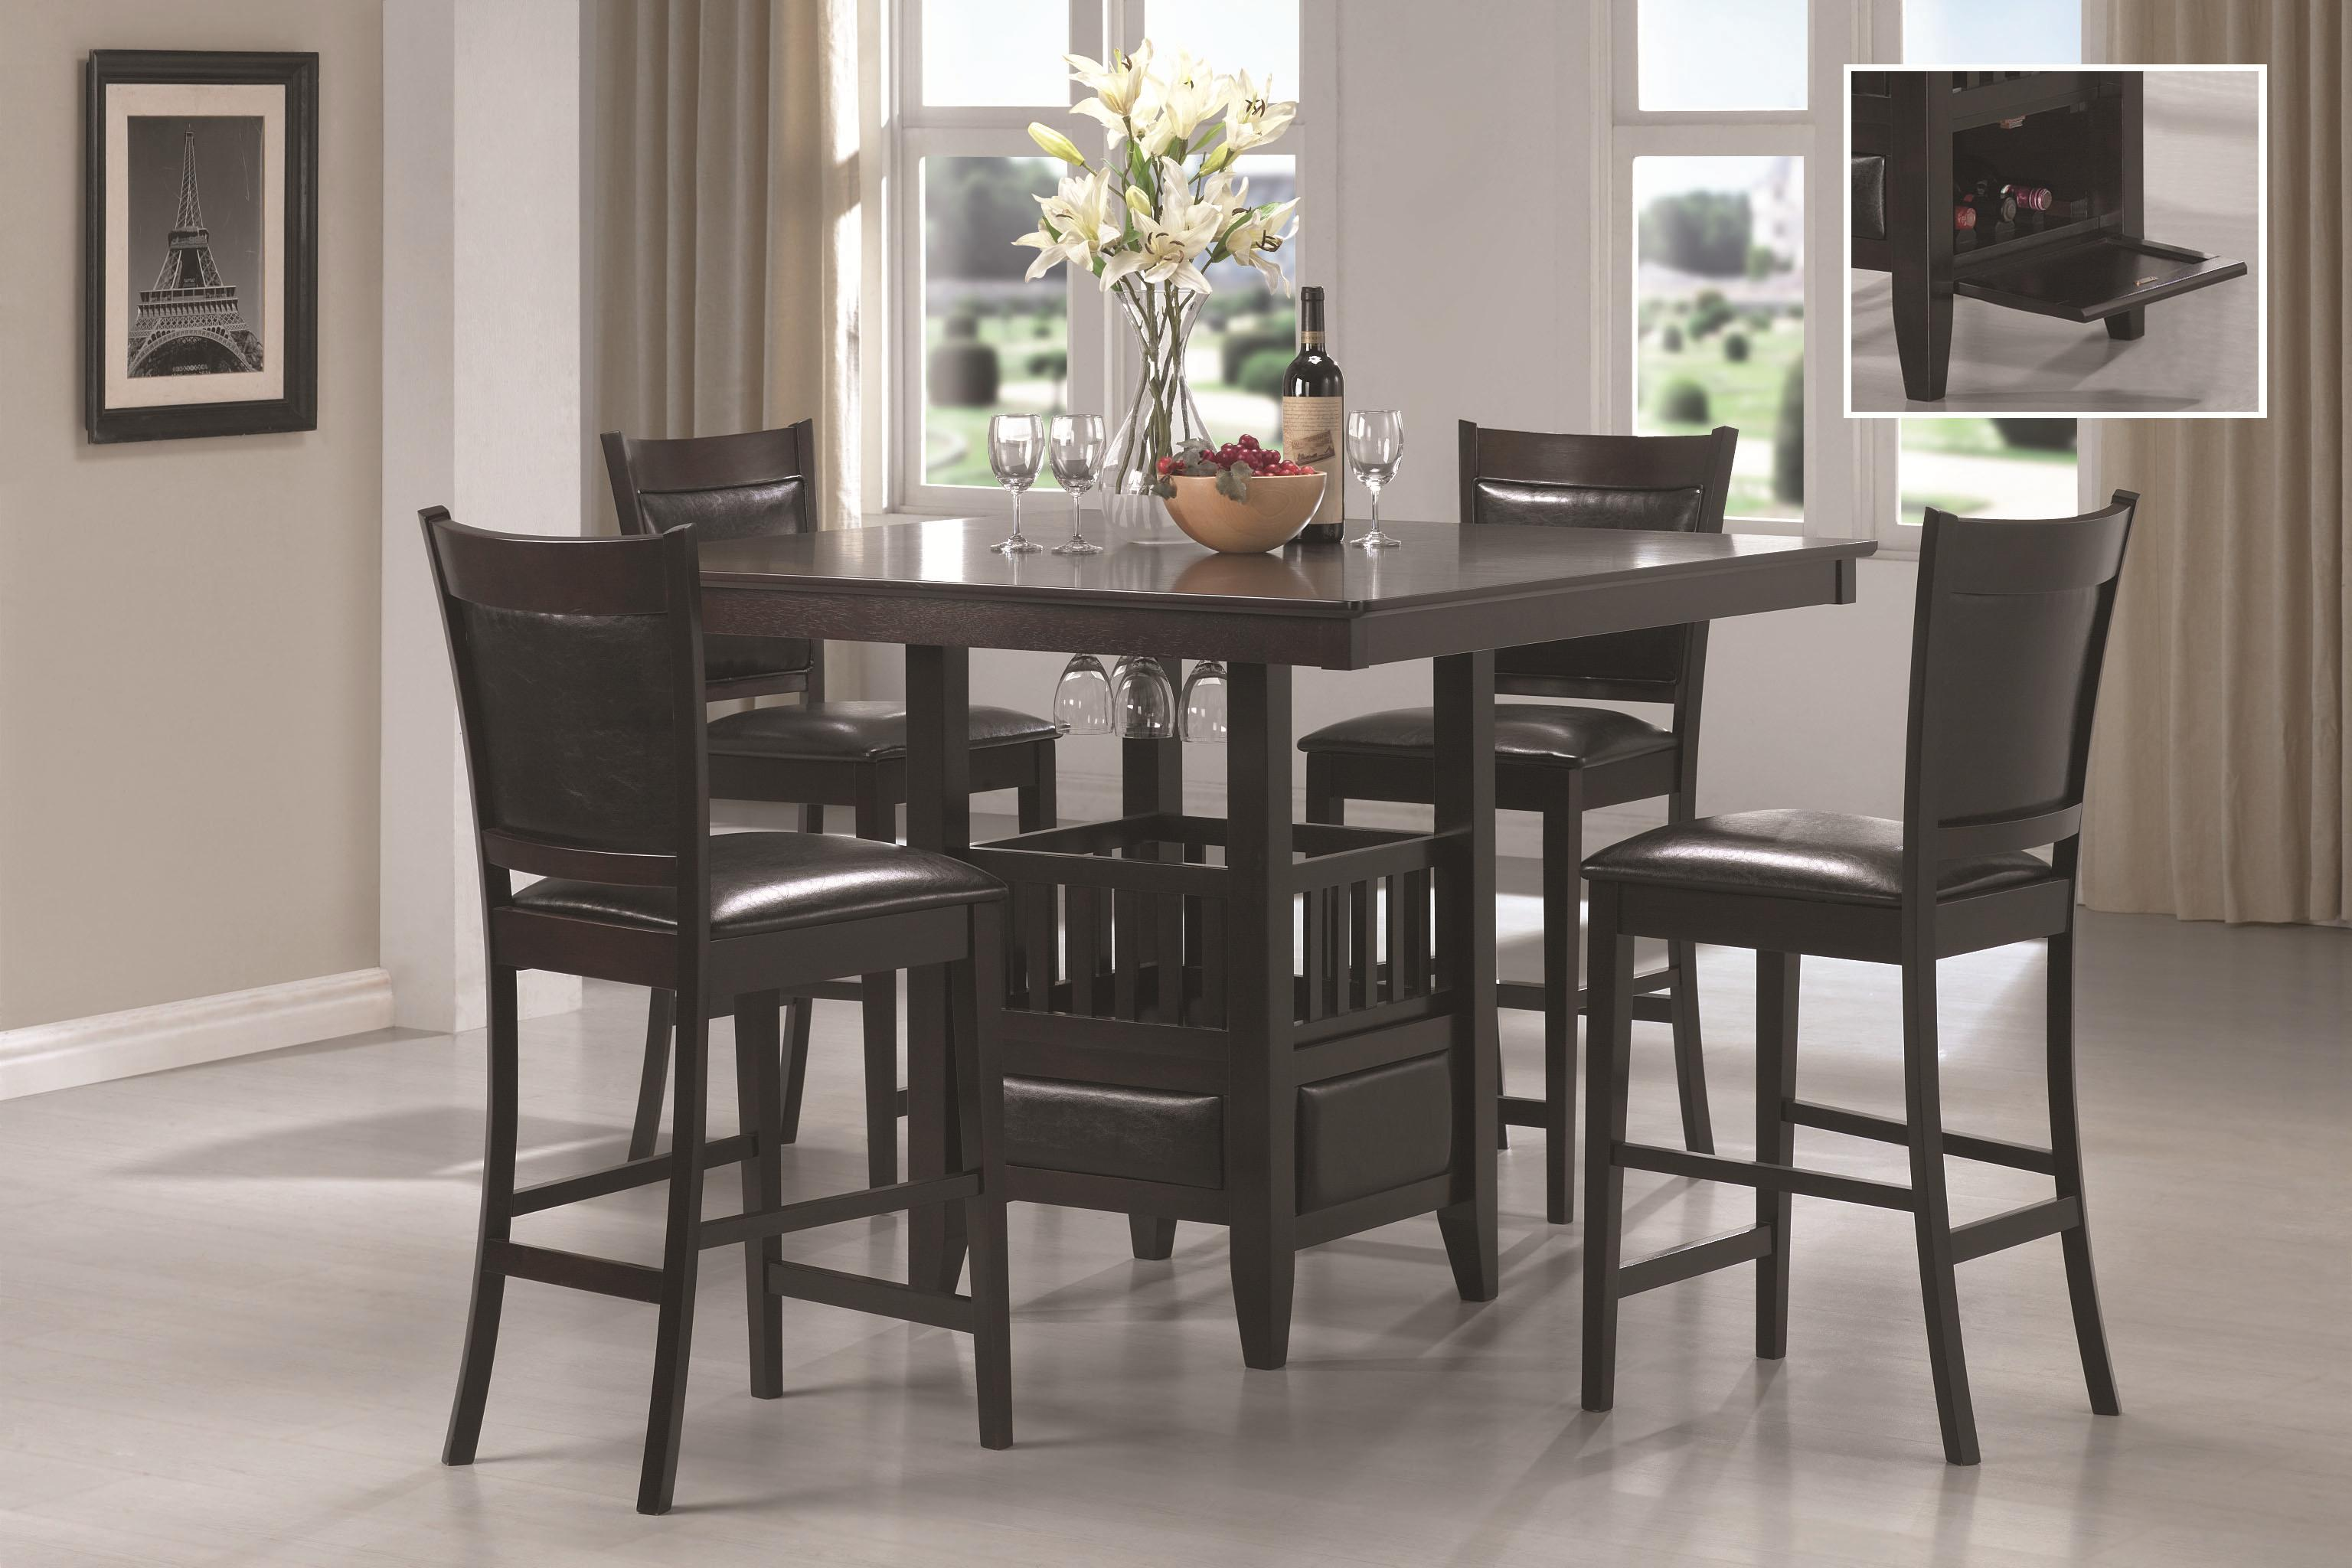 counter height kitchen table sets high kitchen table sets Counter height kitchen table sets Photo 5